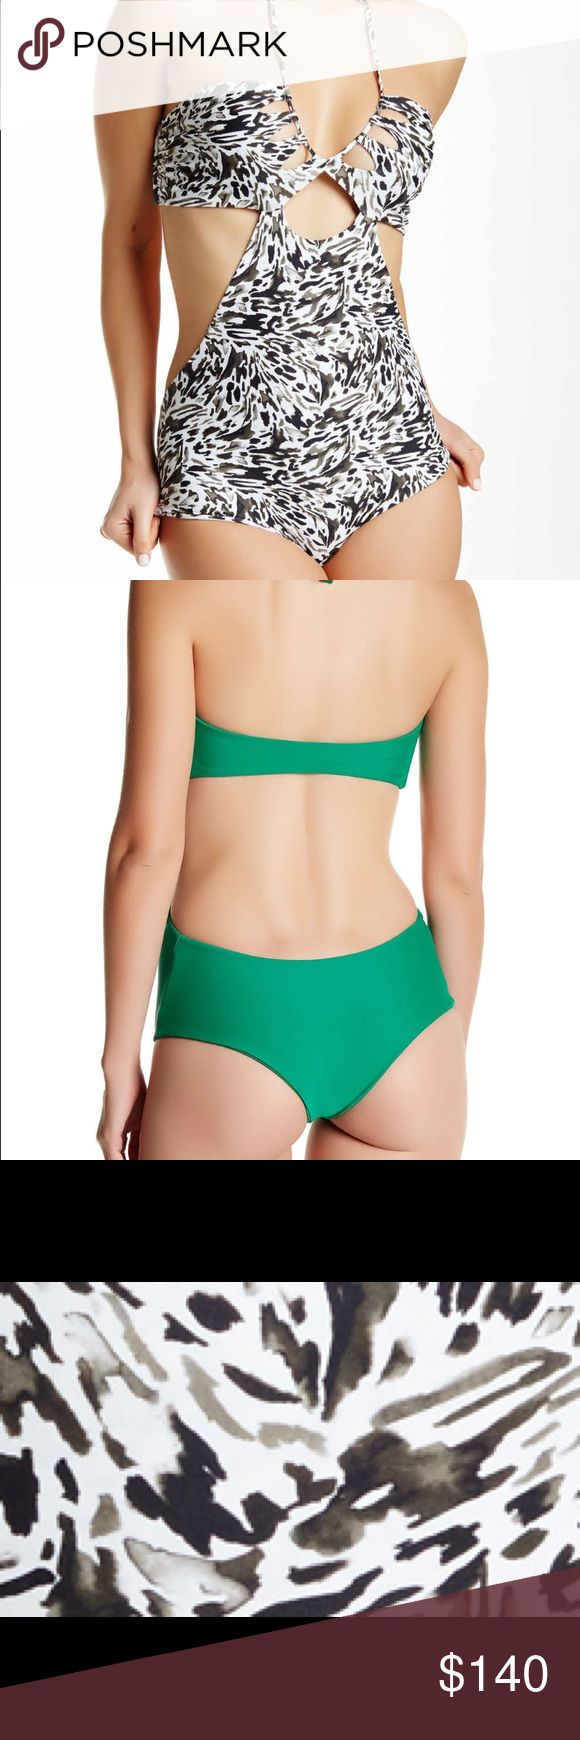 Mikoh Cloudbreak One-piece Leopard Shark Night NWT Mikoh Cloudbreak One piece. Green suit pic is what it looks like on the back. Leopard shark print is what I am selling. Ties on around neck. Very flattering cut. No trades. Mikoh Swim One Pieces